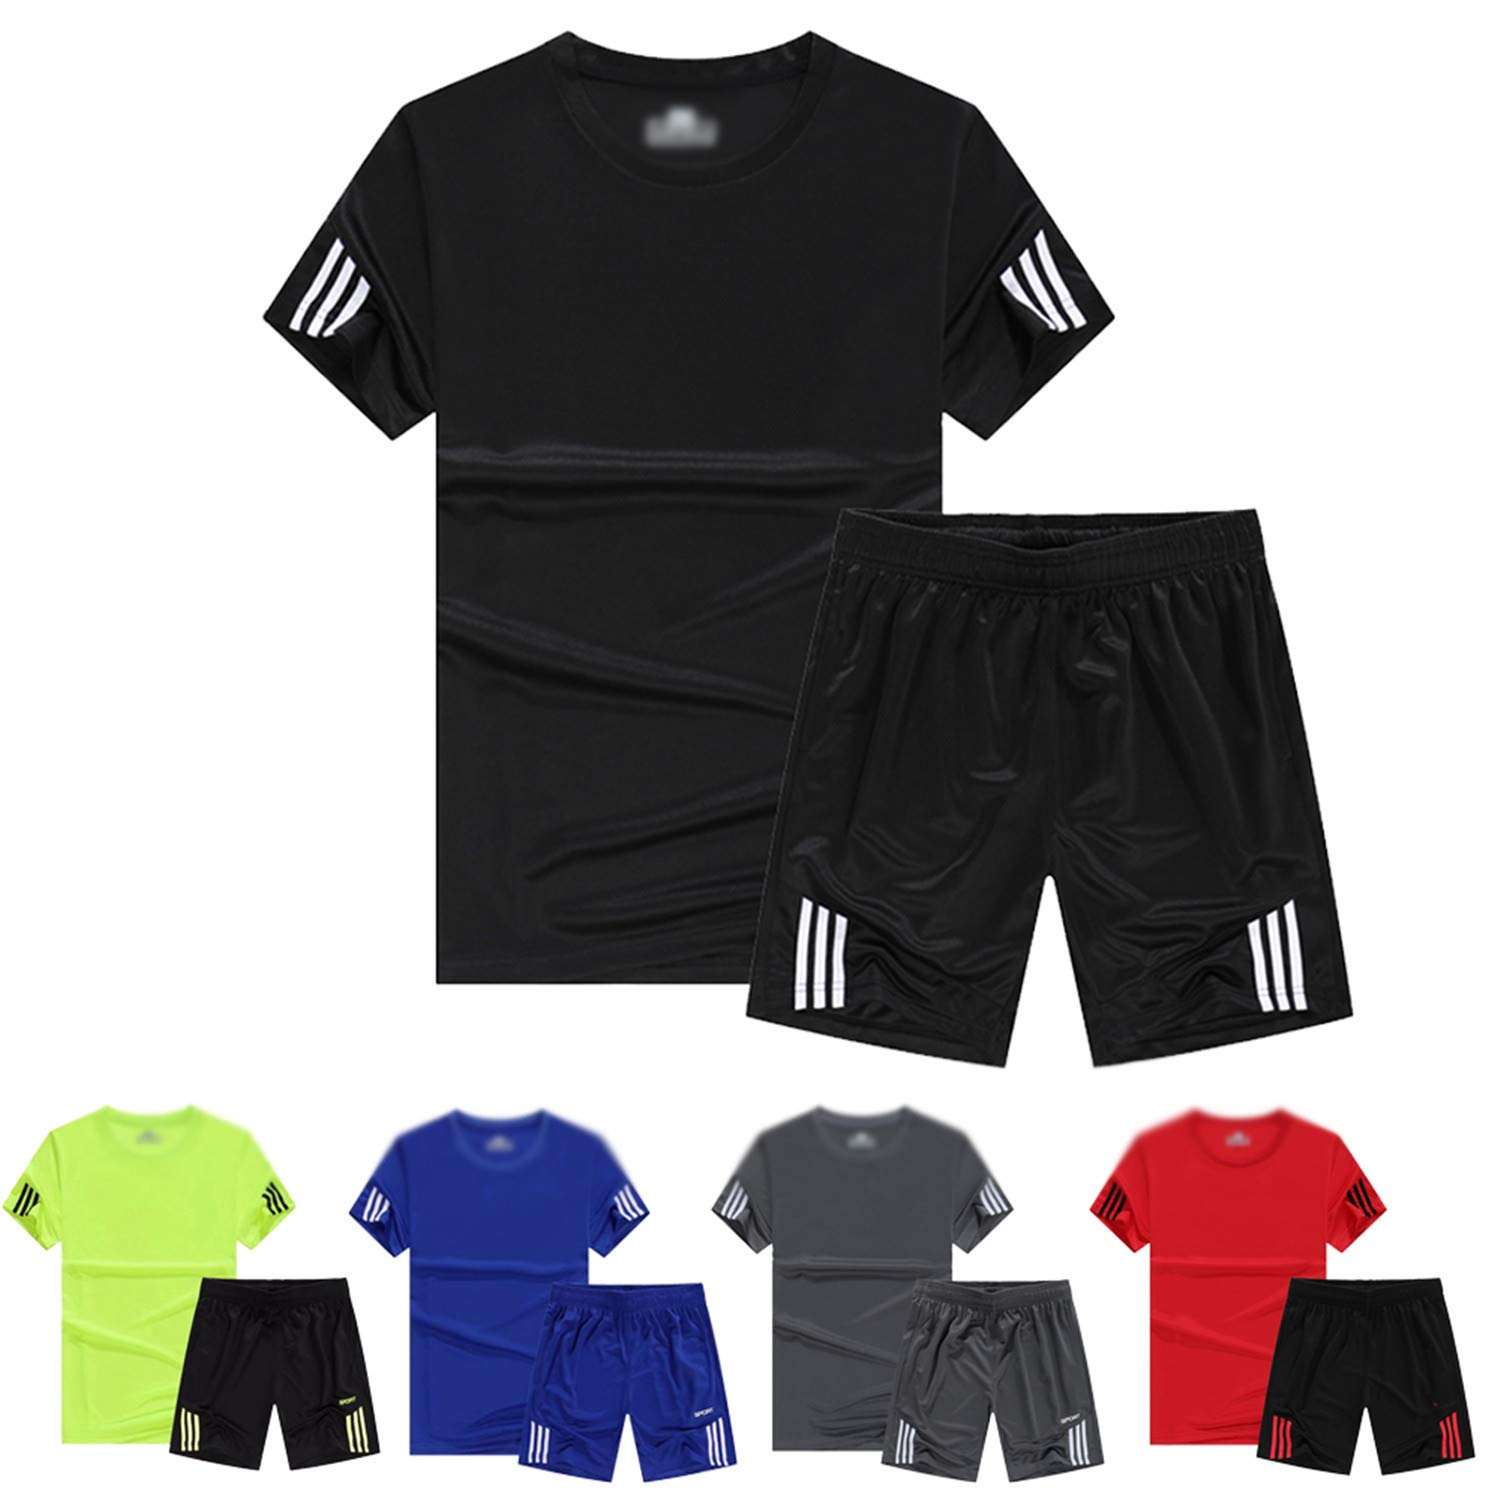 Amazon.com: Men Sport Running Sets, Soccer Training Tracksuits Jersey Fitness Sportswear Gym Sports Sets Soccer Jerseys: Clothing